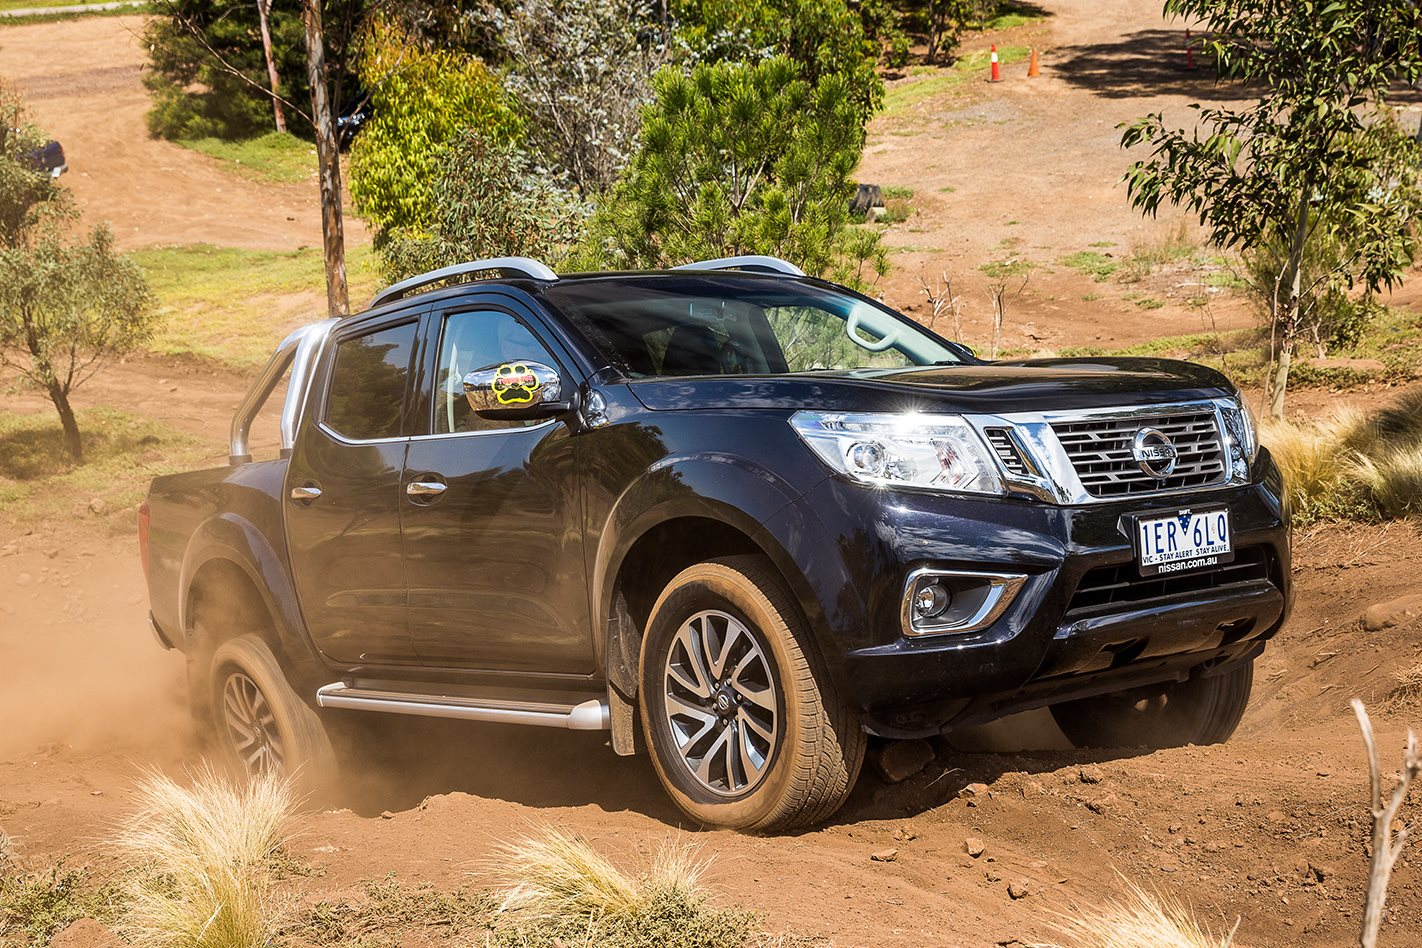 nissan issues recalls for d23 navara 4x4 australia. Black Bedroom Furniture Sets. Home Design Ideas